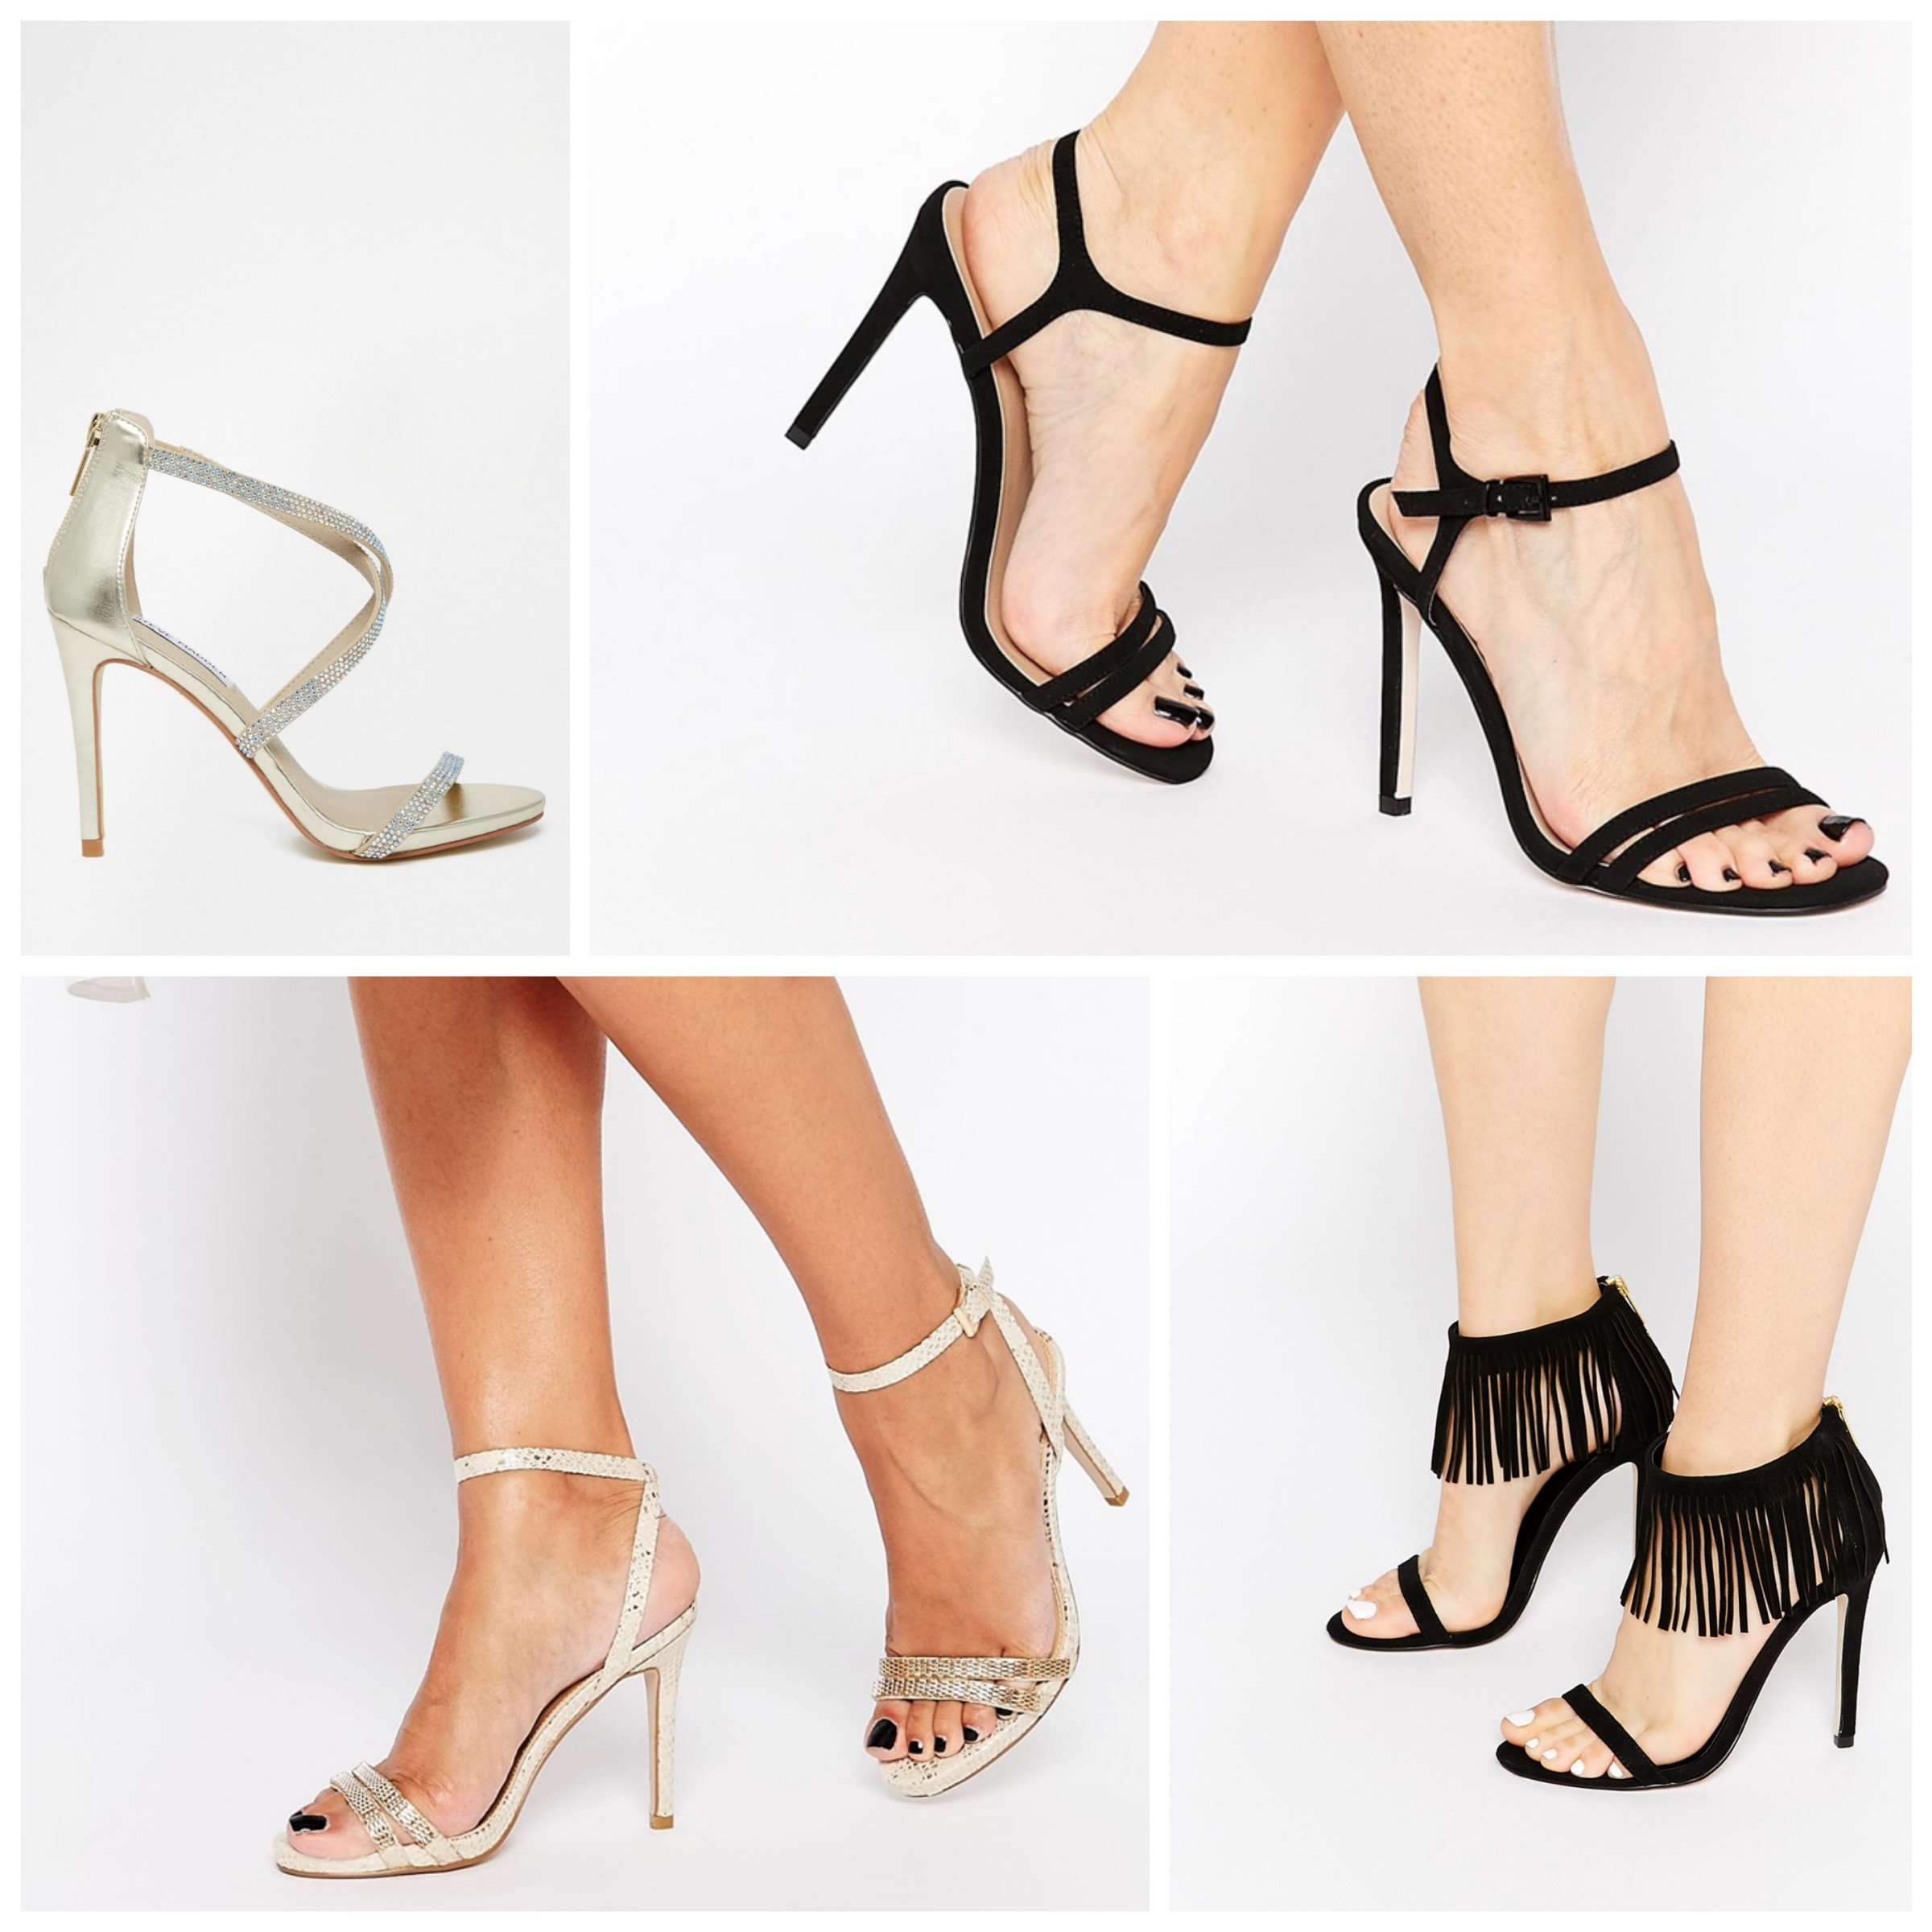 Affordable Copycats of Nudist & Lovefringe Sandals